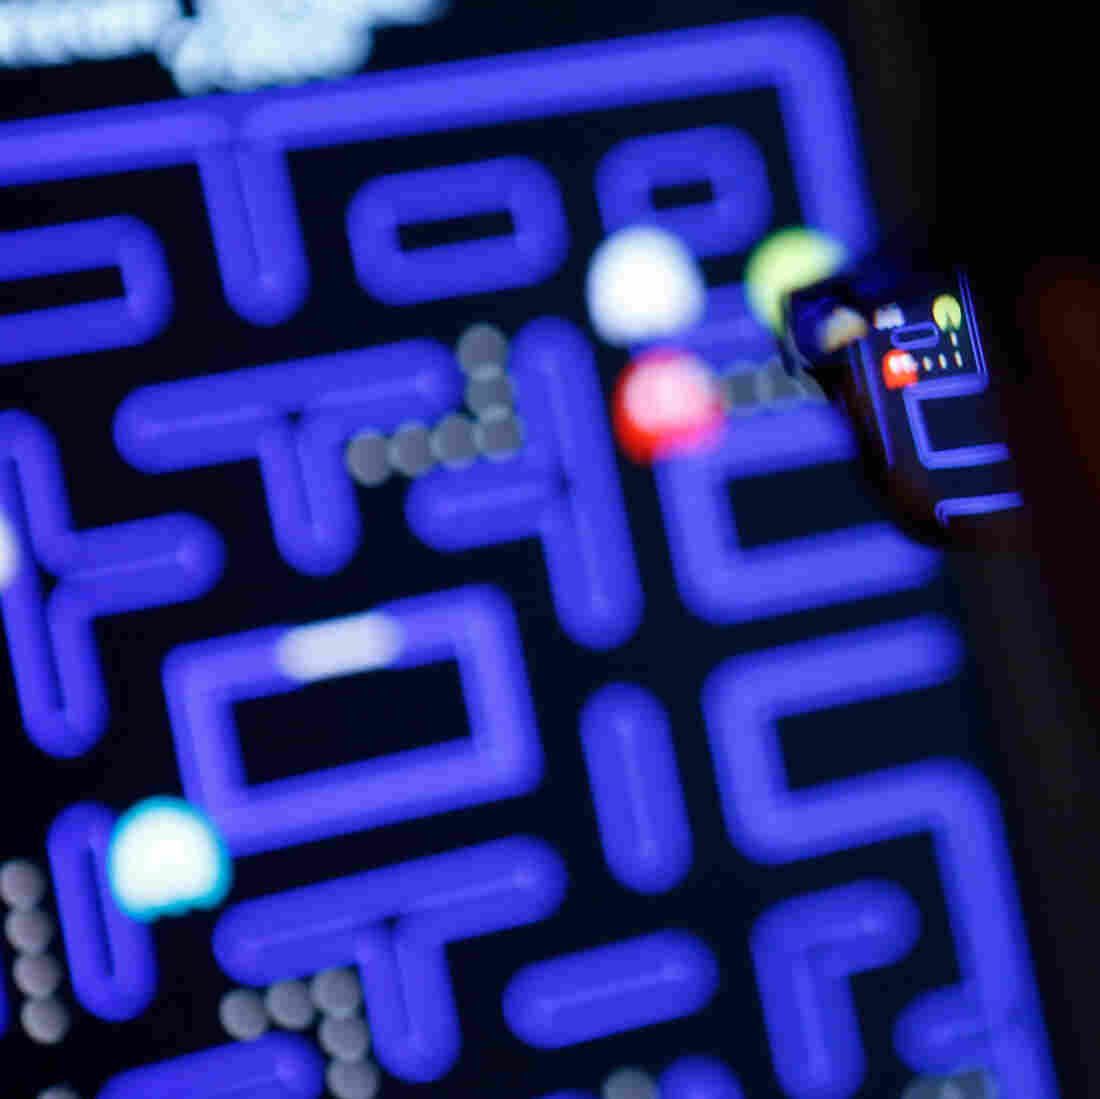 What's your favorite classic arcade game?